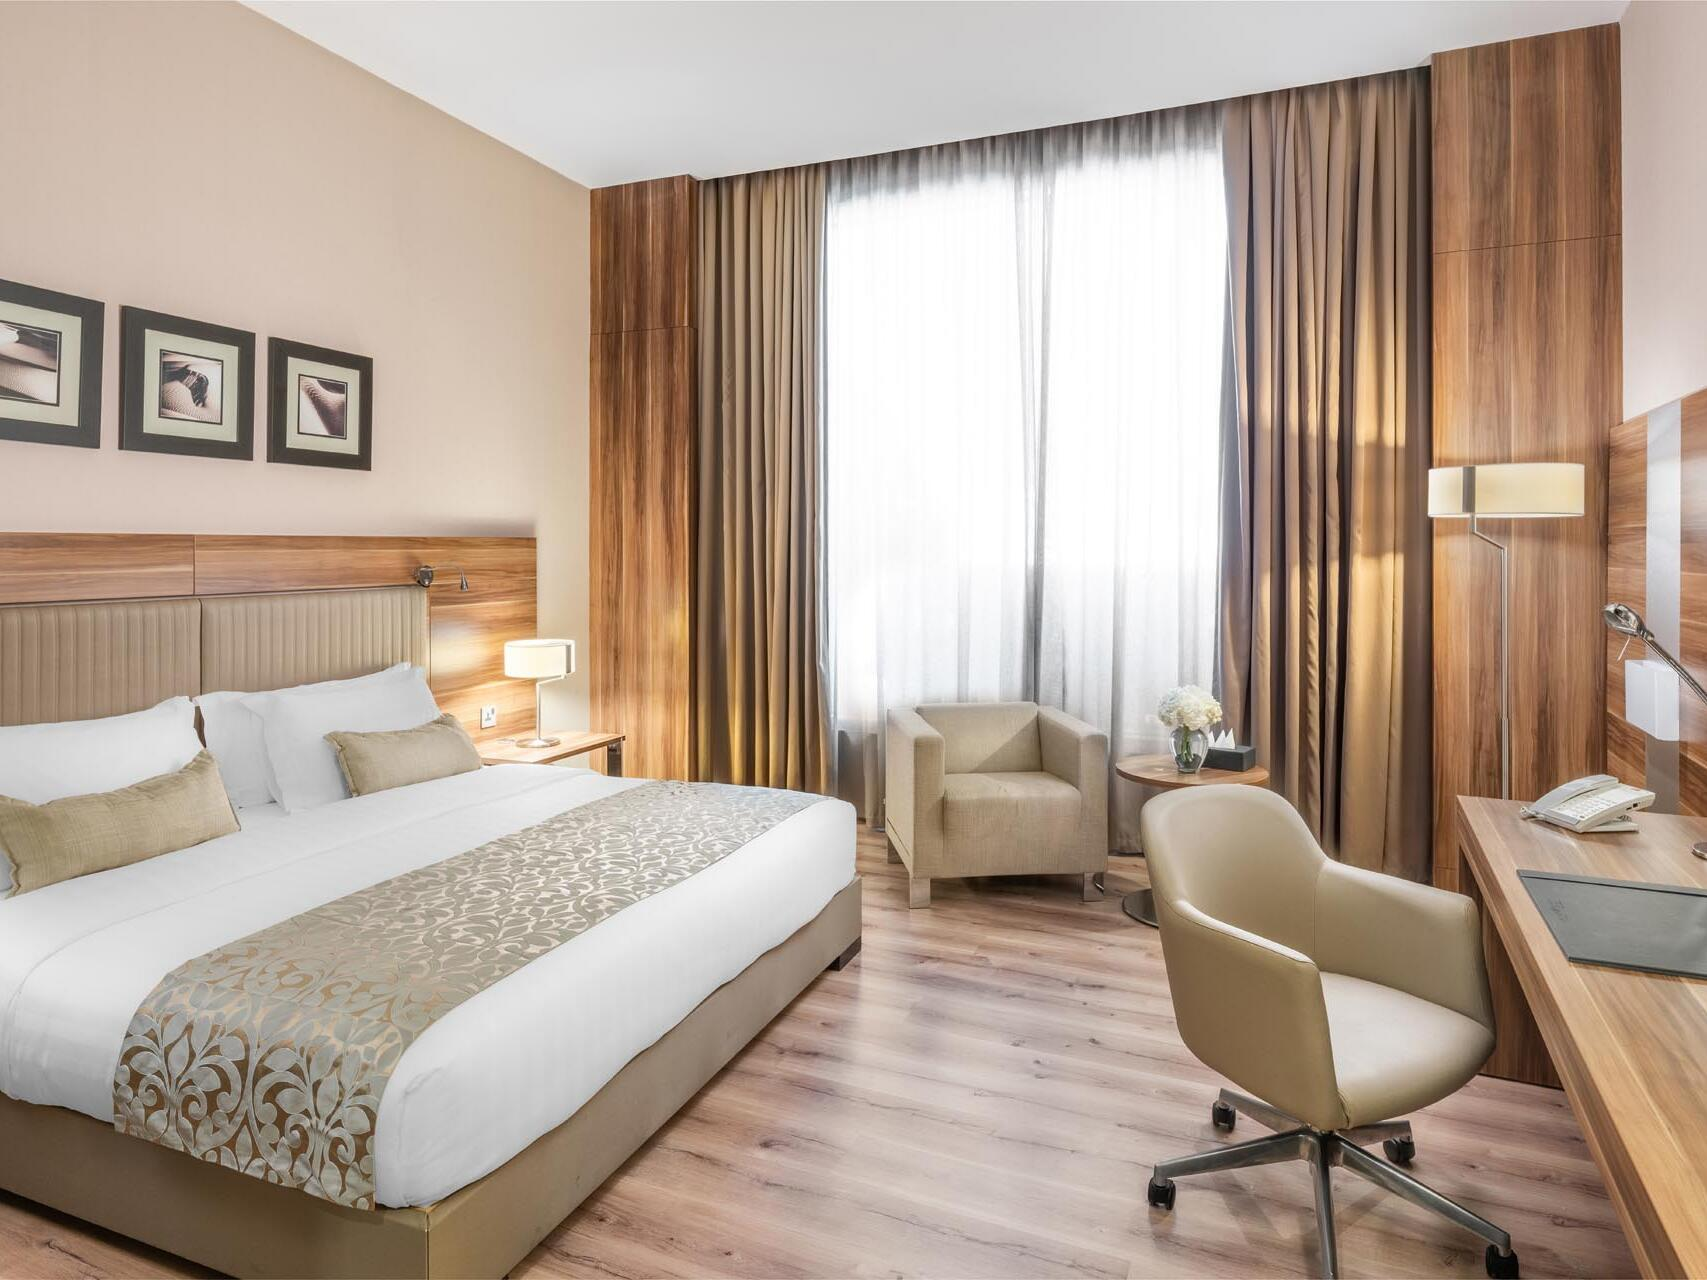 Deluxe Room City View with one bed at Bay La Sun Hotel & Marina